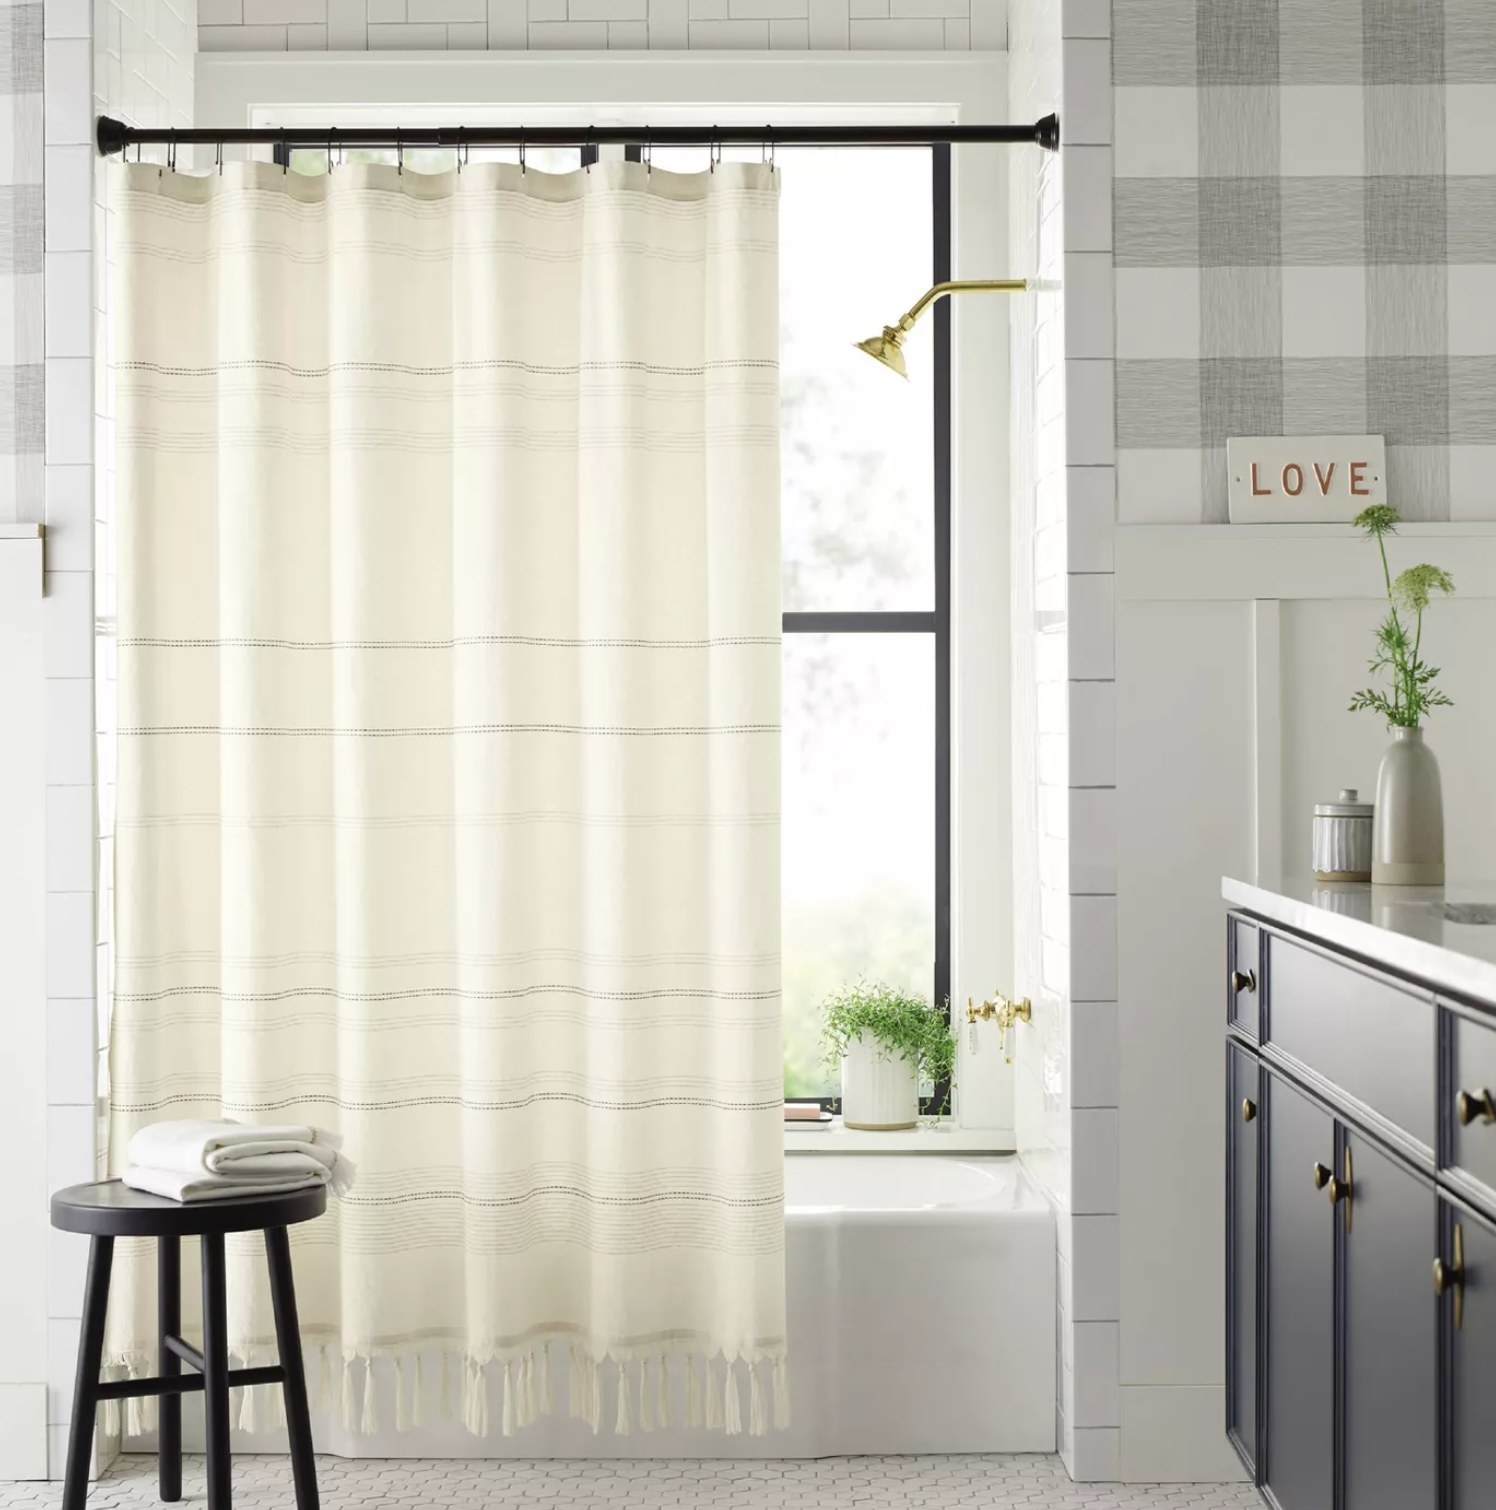 The curtain in a bathroom hanging on a shower rod